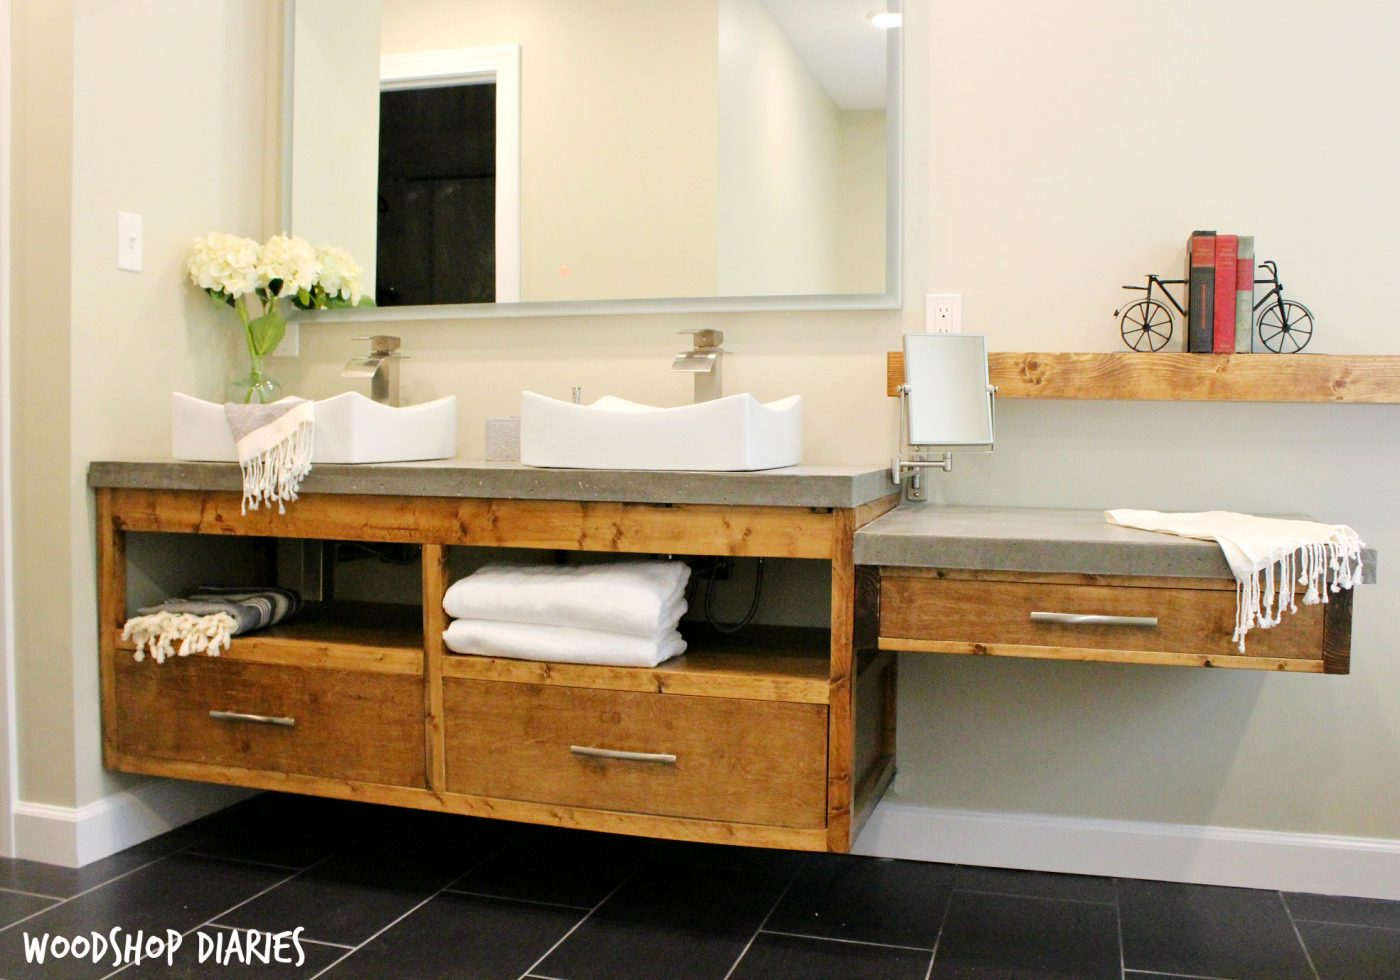 Free Building Plans To Make Your Own Modern DIY Floating Bathroom Vanity.  Plenty Of Storage